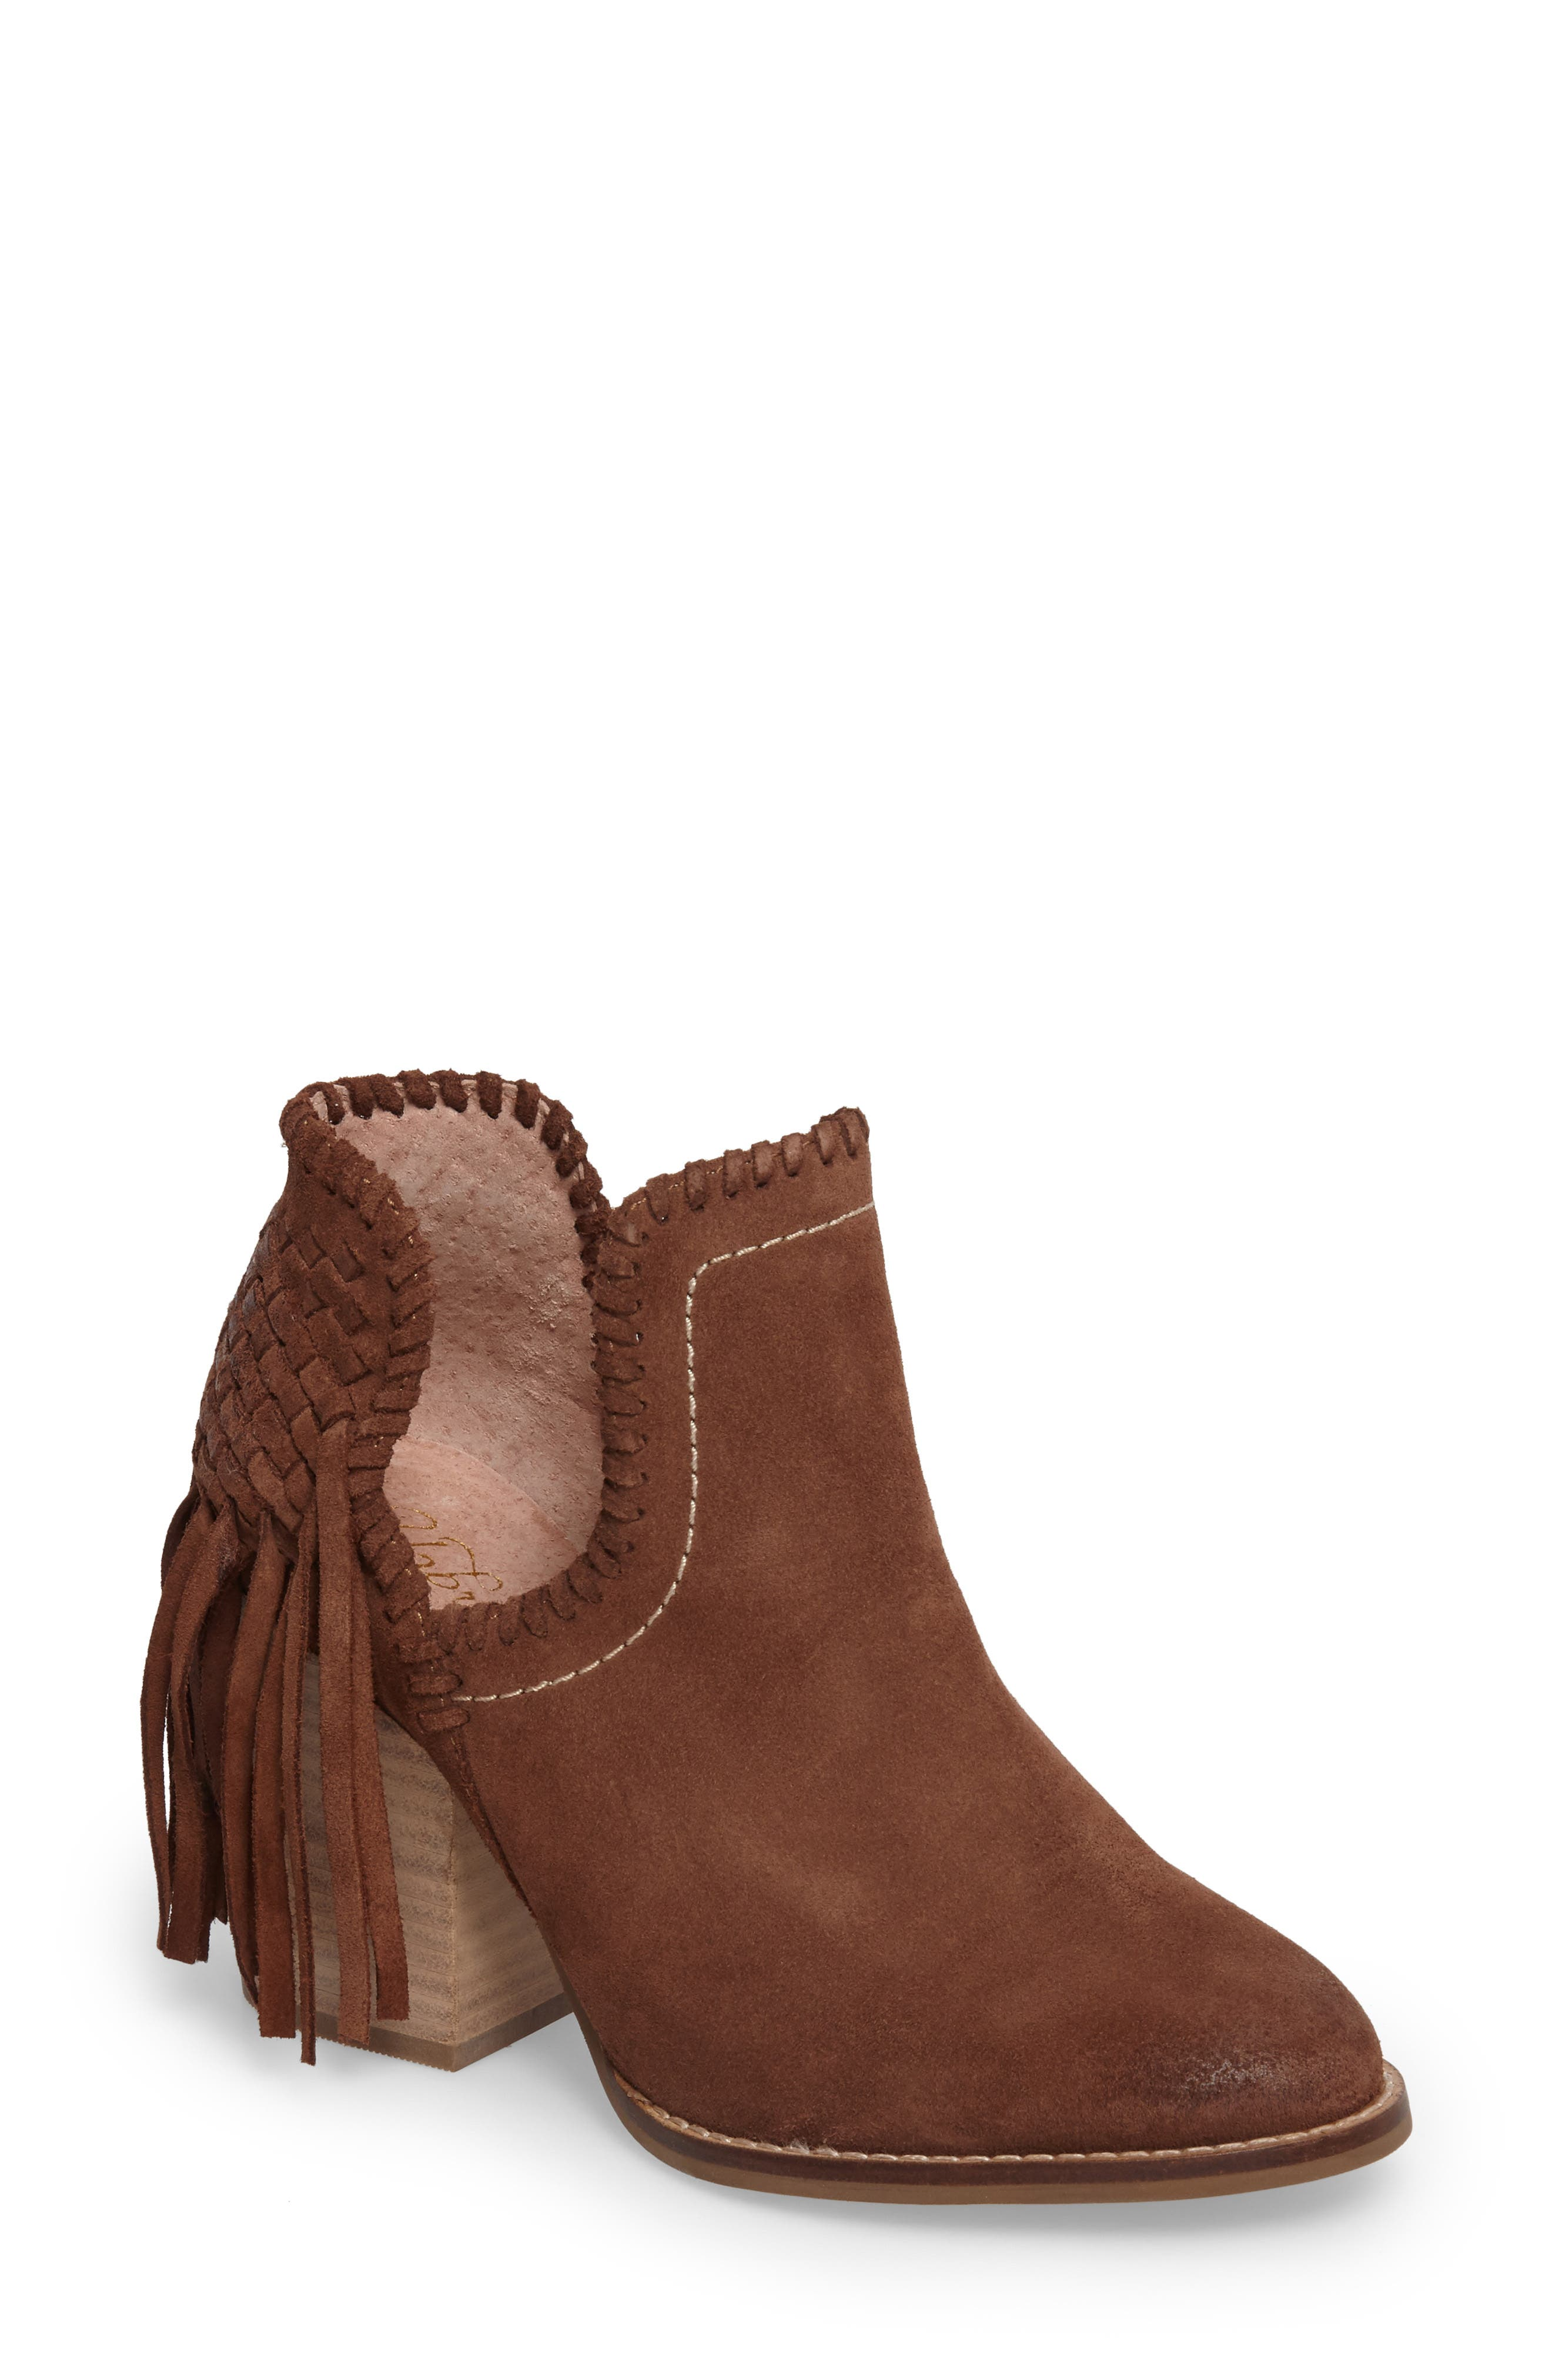 Unbridled Lily Bootie,                         Main,                         color, Whiskey Suede